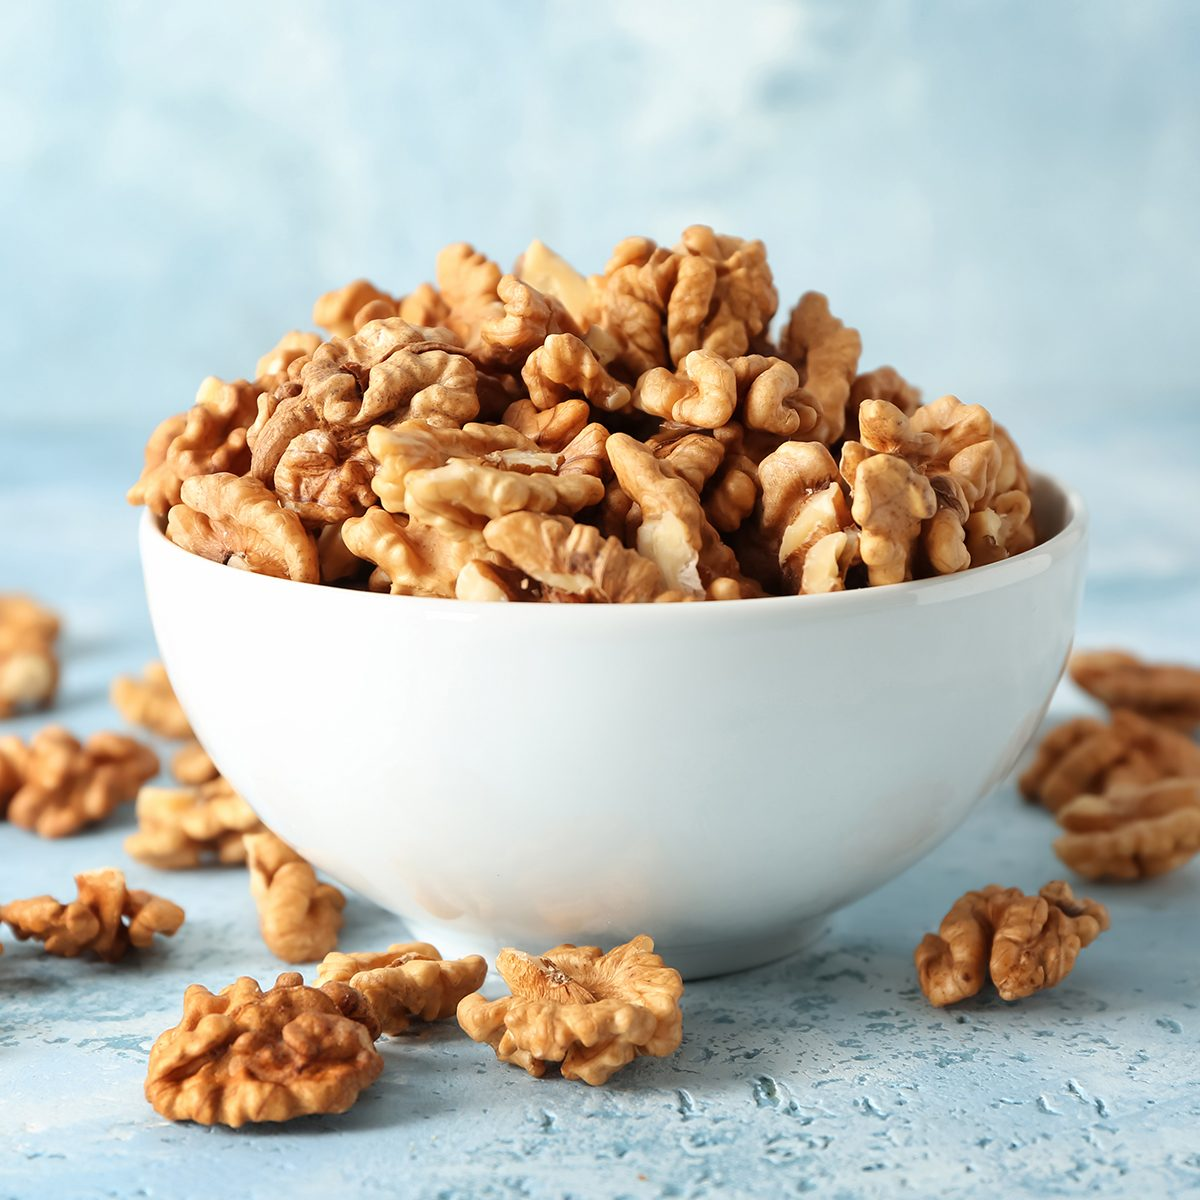 Bowl with tasty walnuts on color table